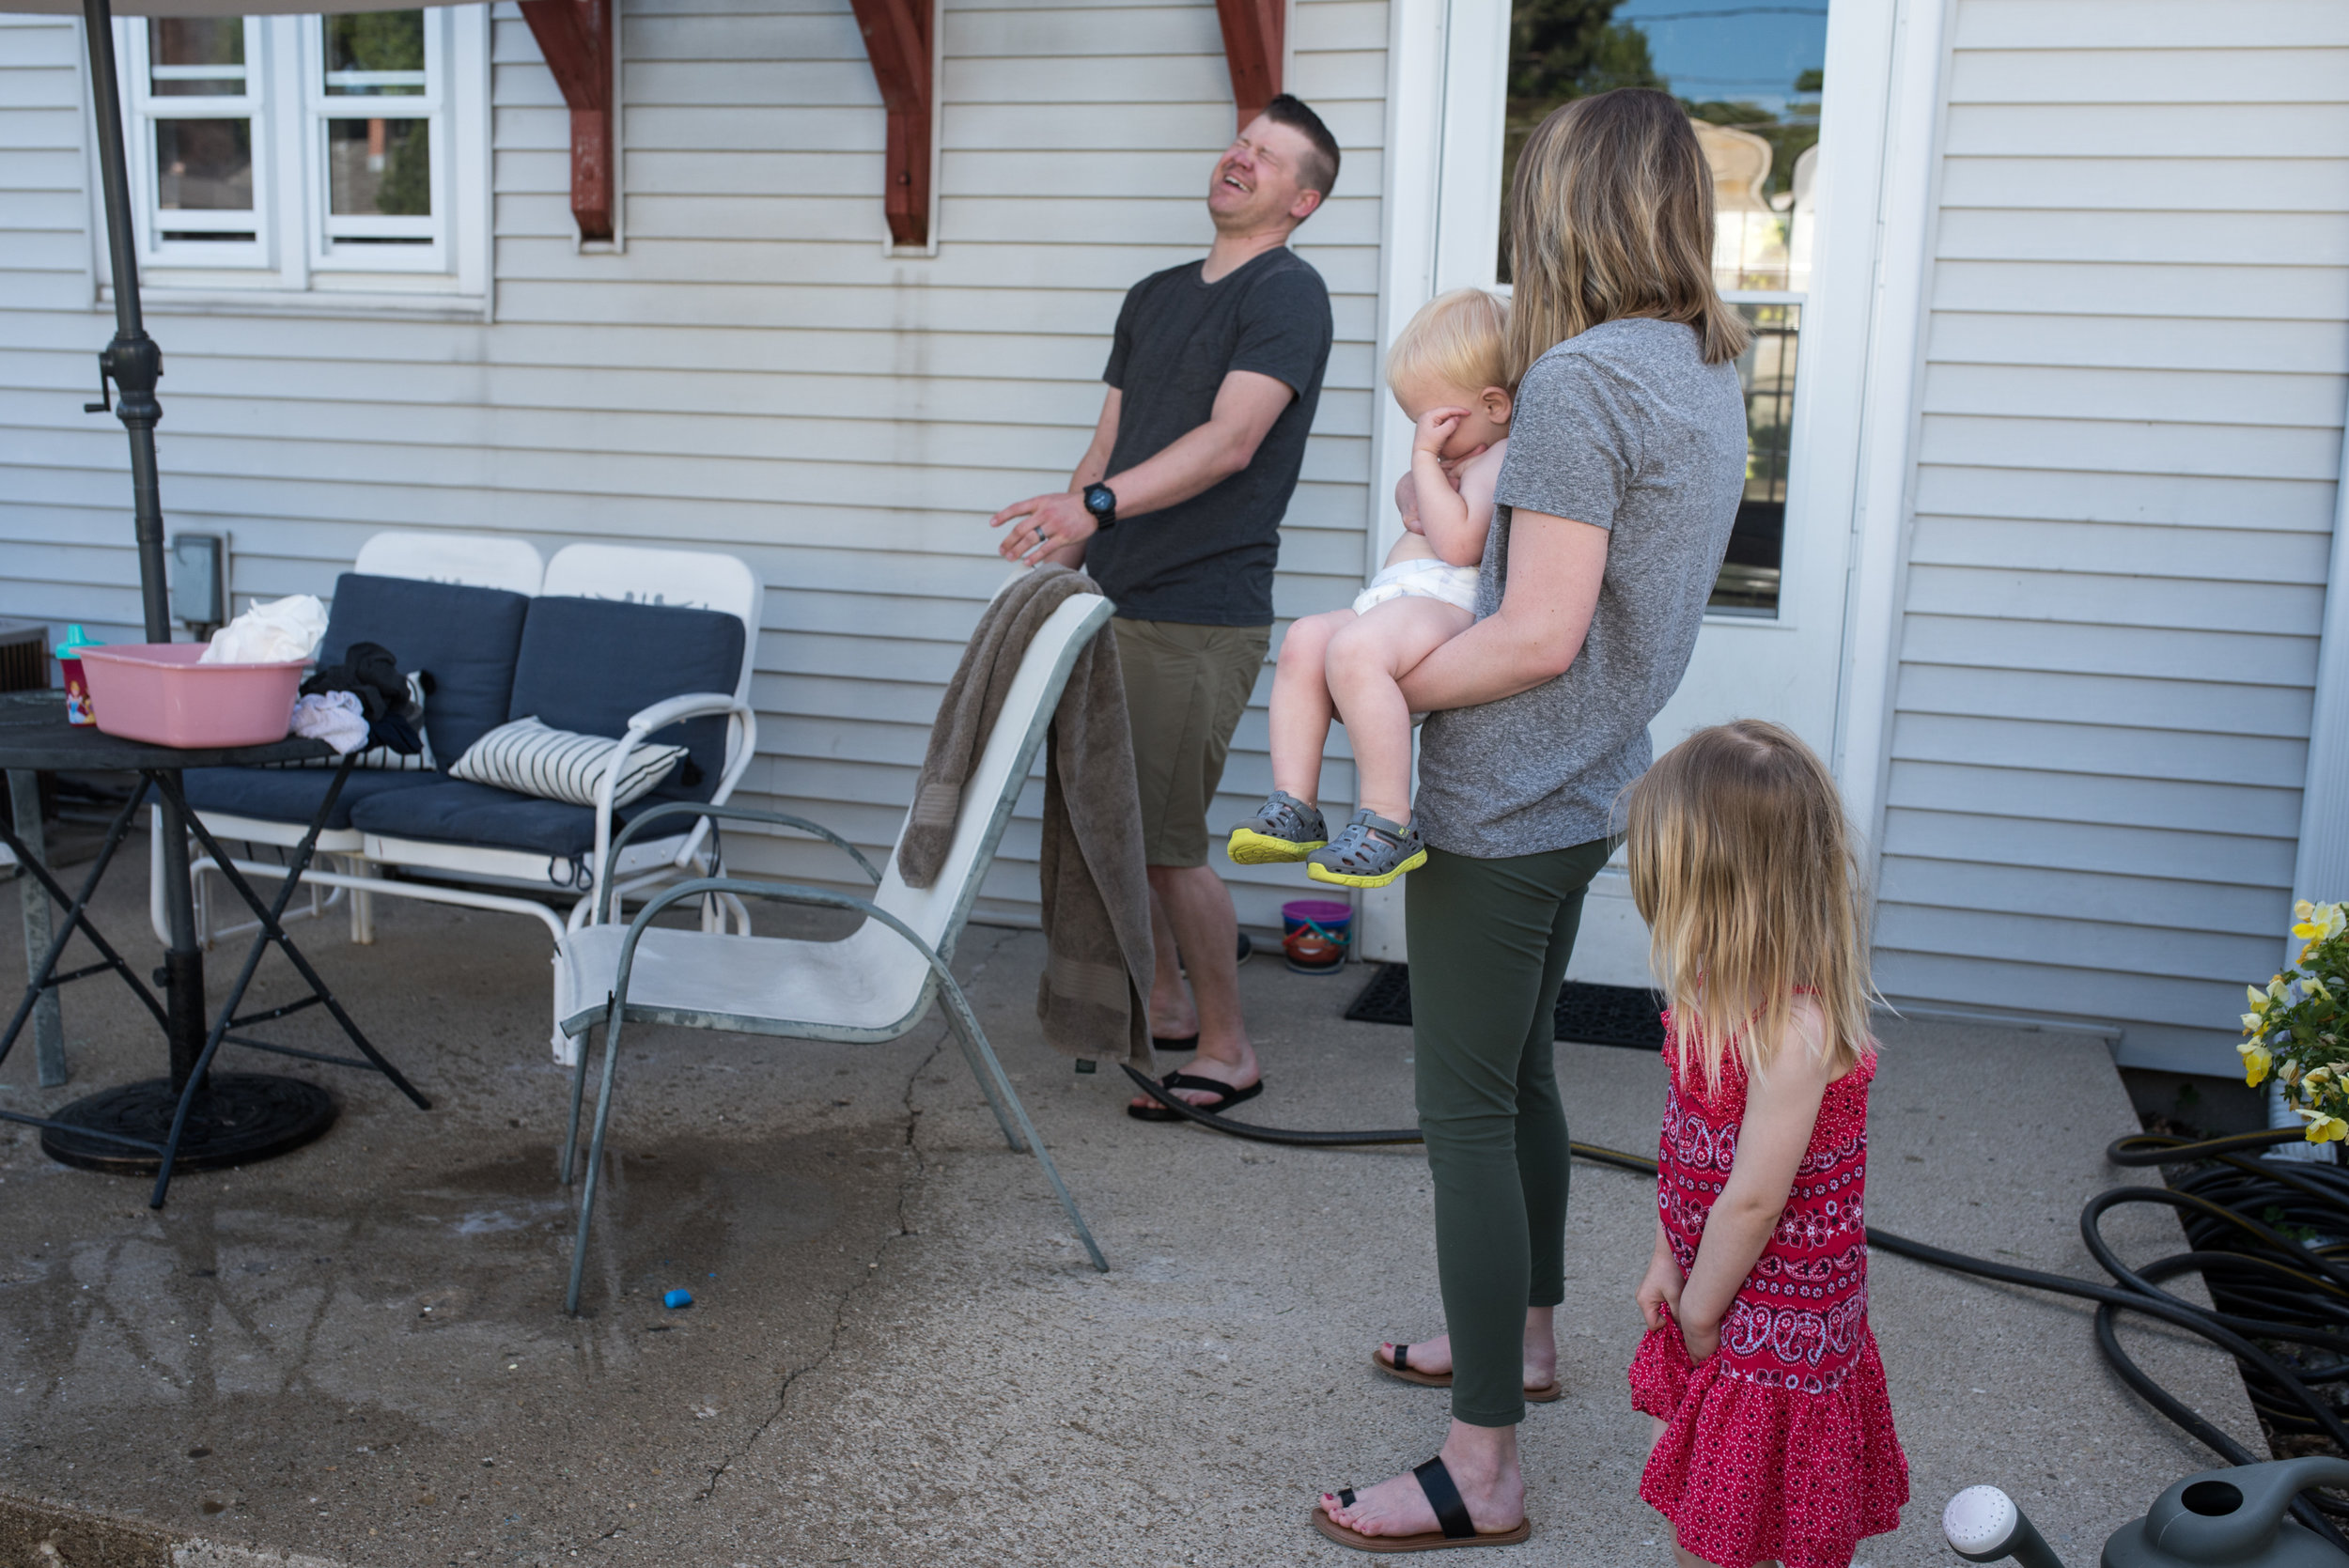 Dad laughing while spraying off patio with a hose, mom, son and daughter look on